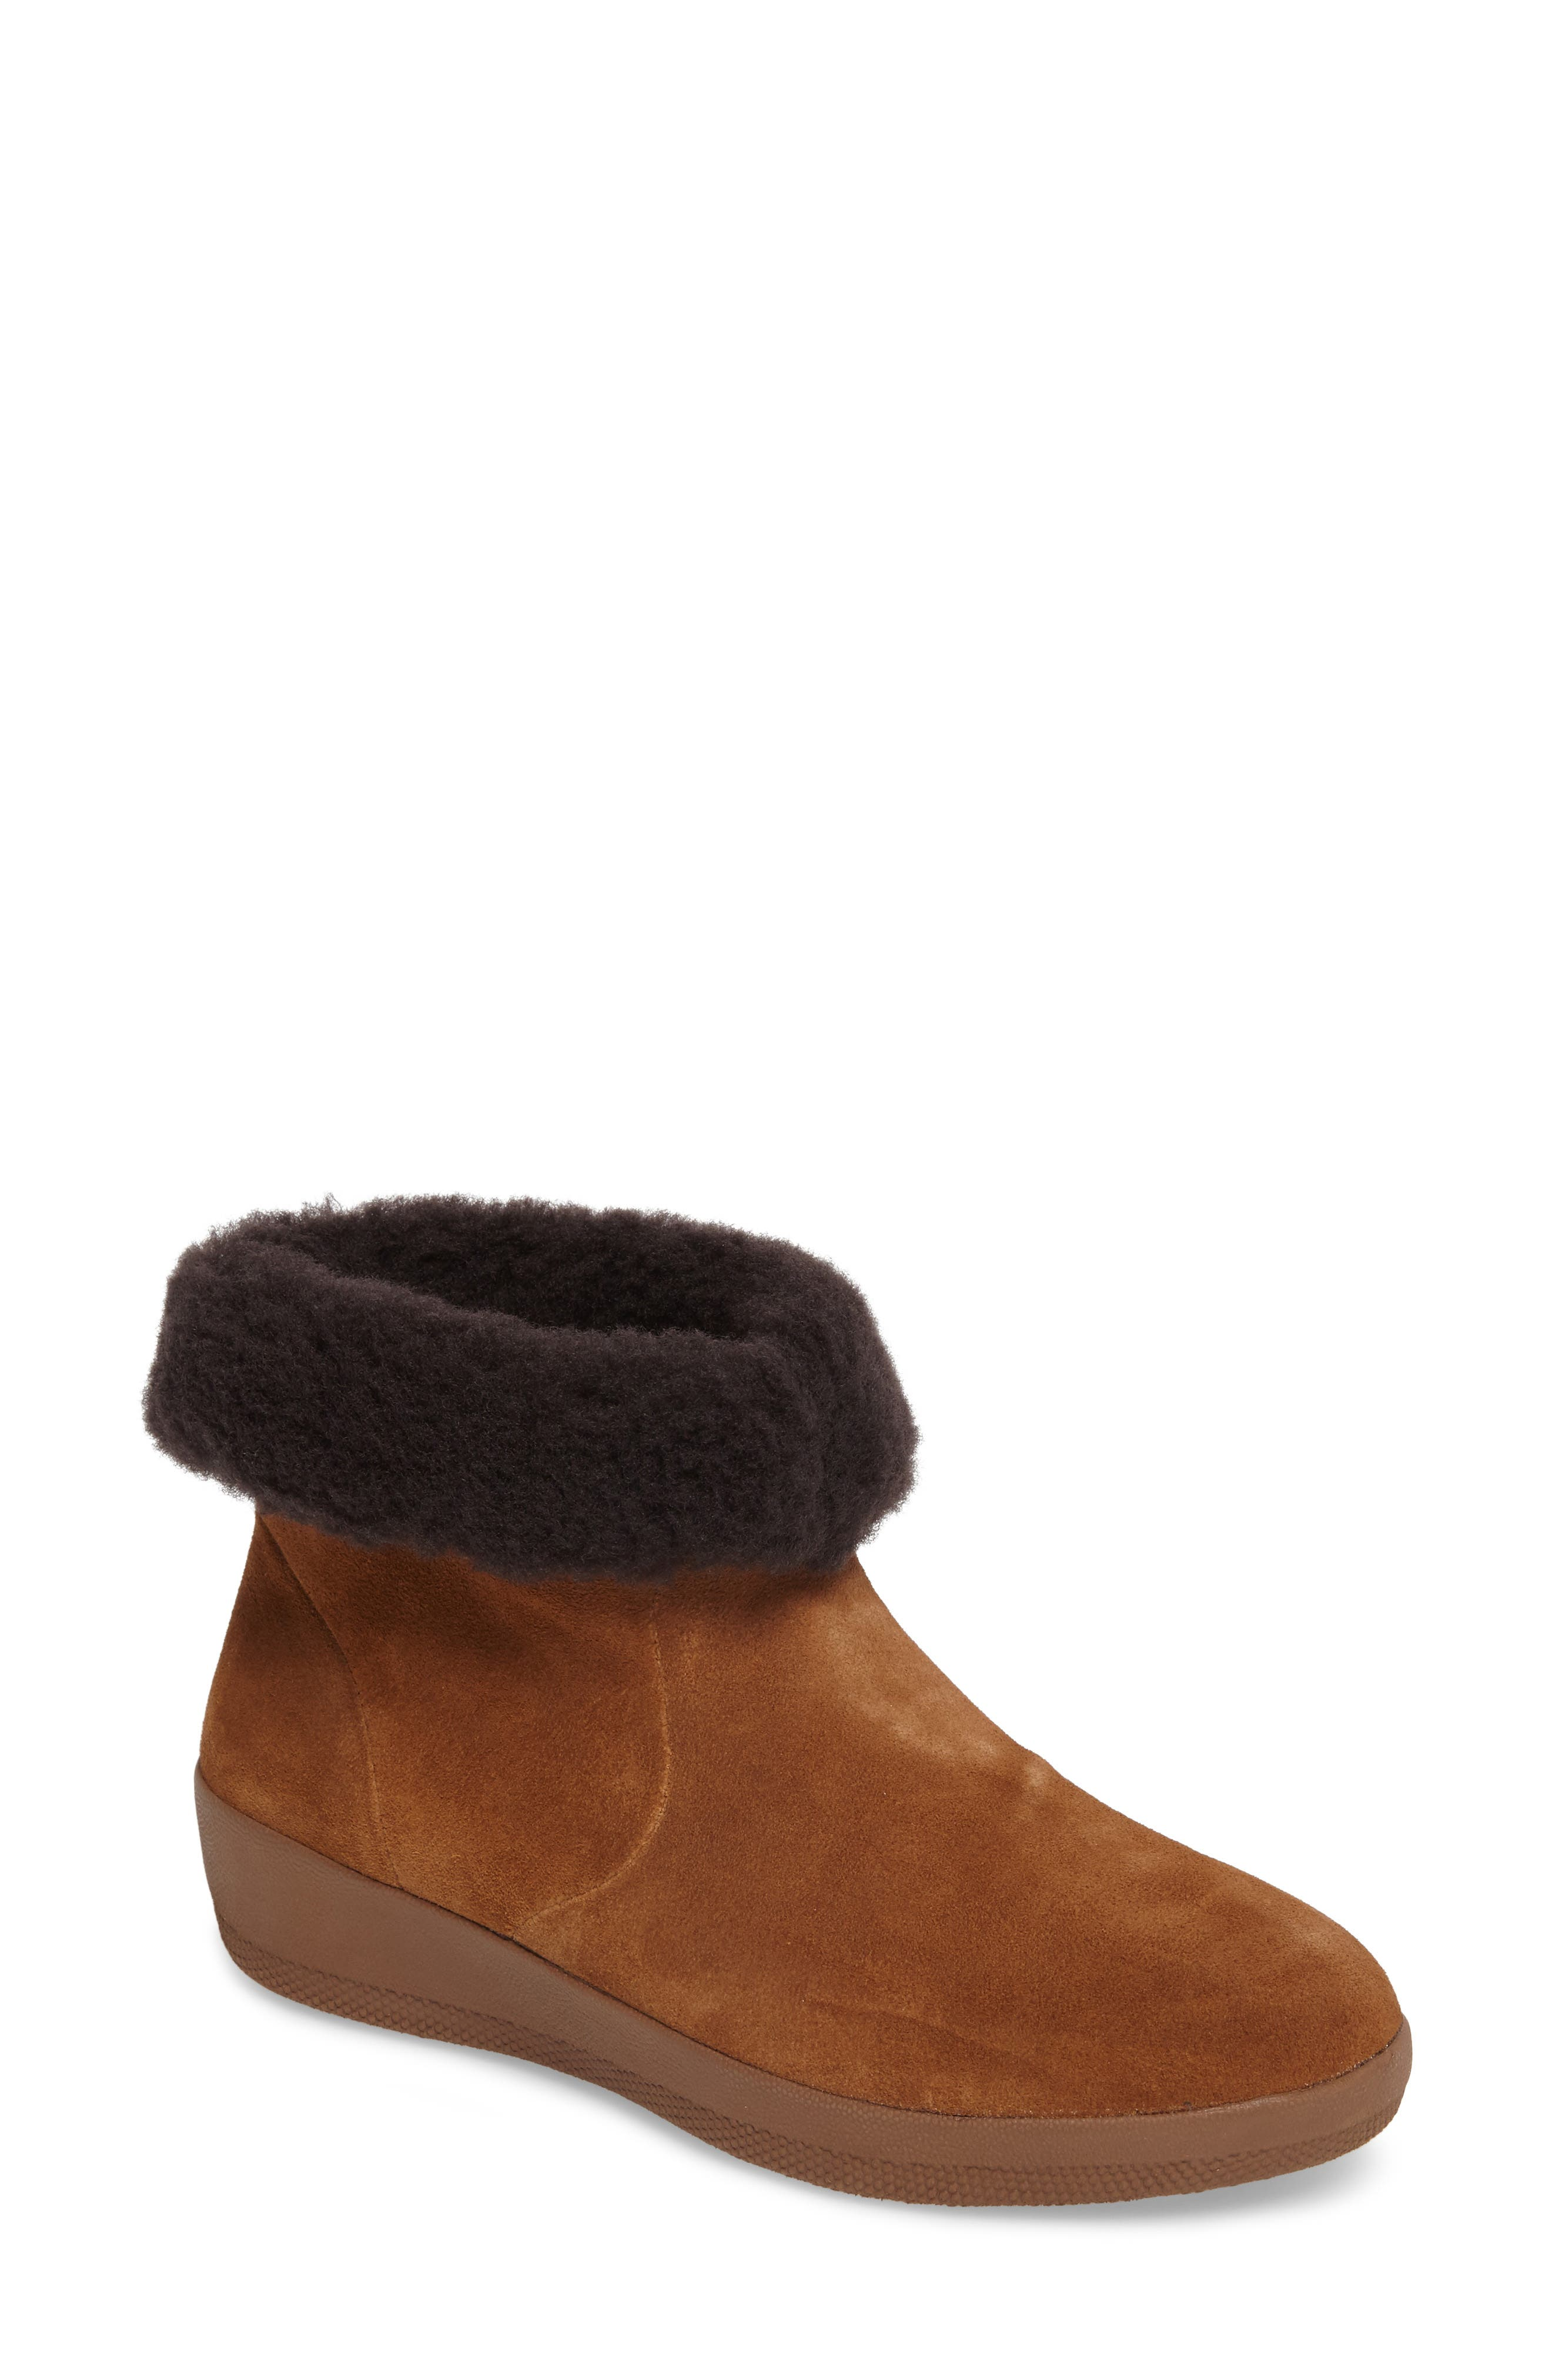 Alternate Image 1 Selected - FitFlop Skate Genuine Shearling Cuff Boot (Women)